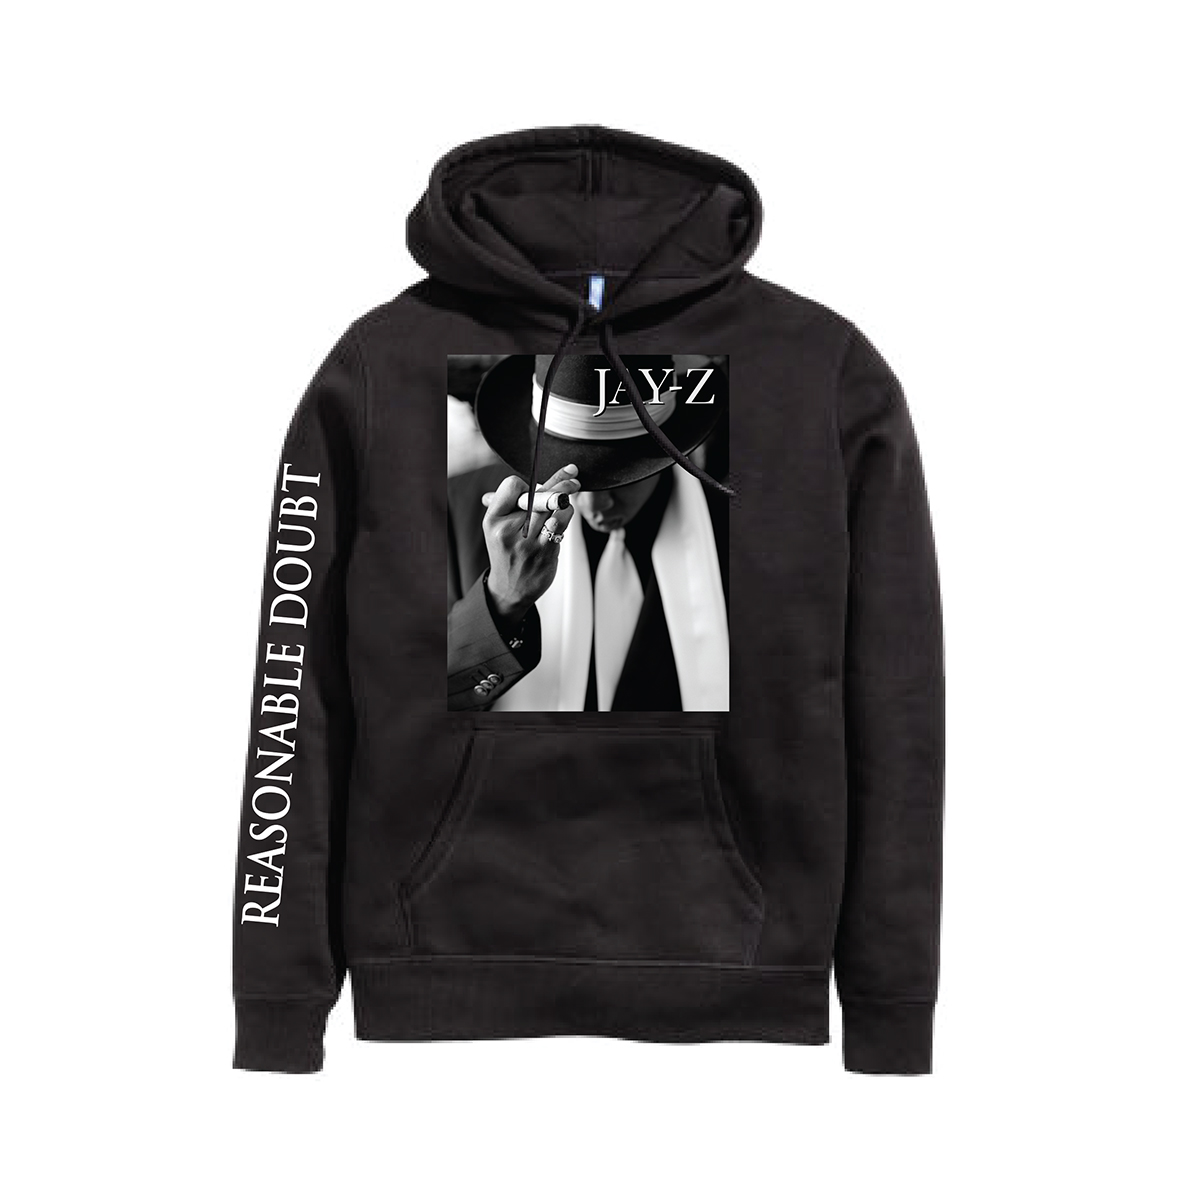 Reasonable Doubt Cover Hoodie